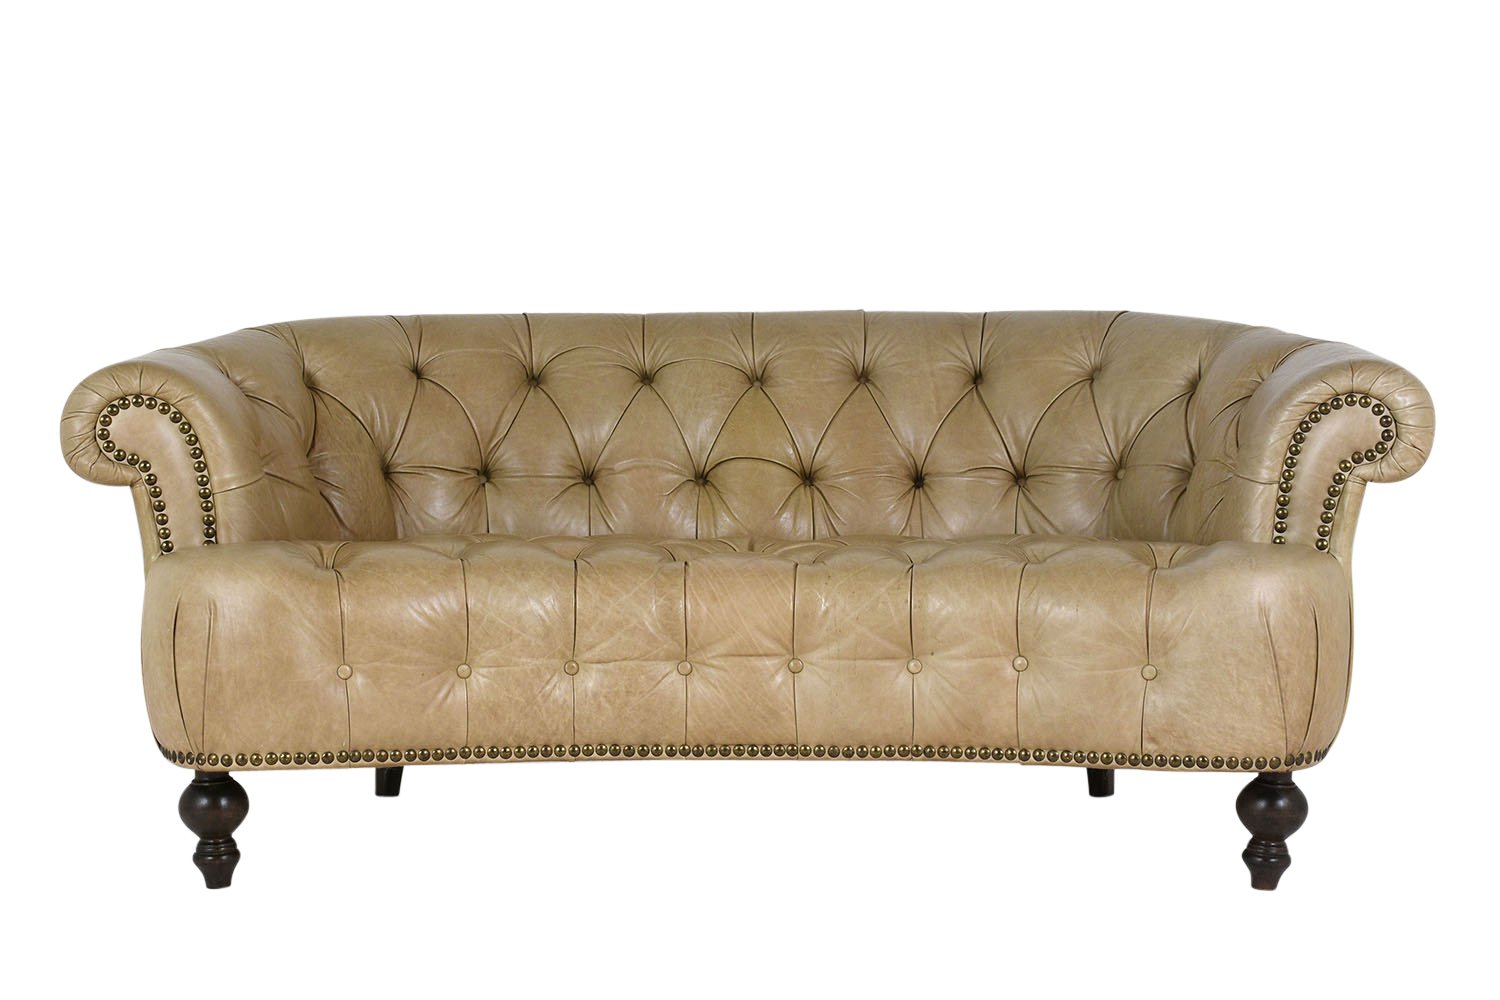 Chesterfield Style Leather Sofa, 1960s